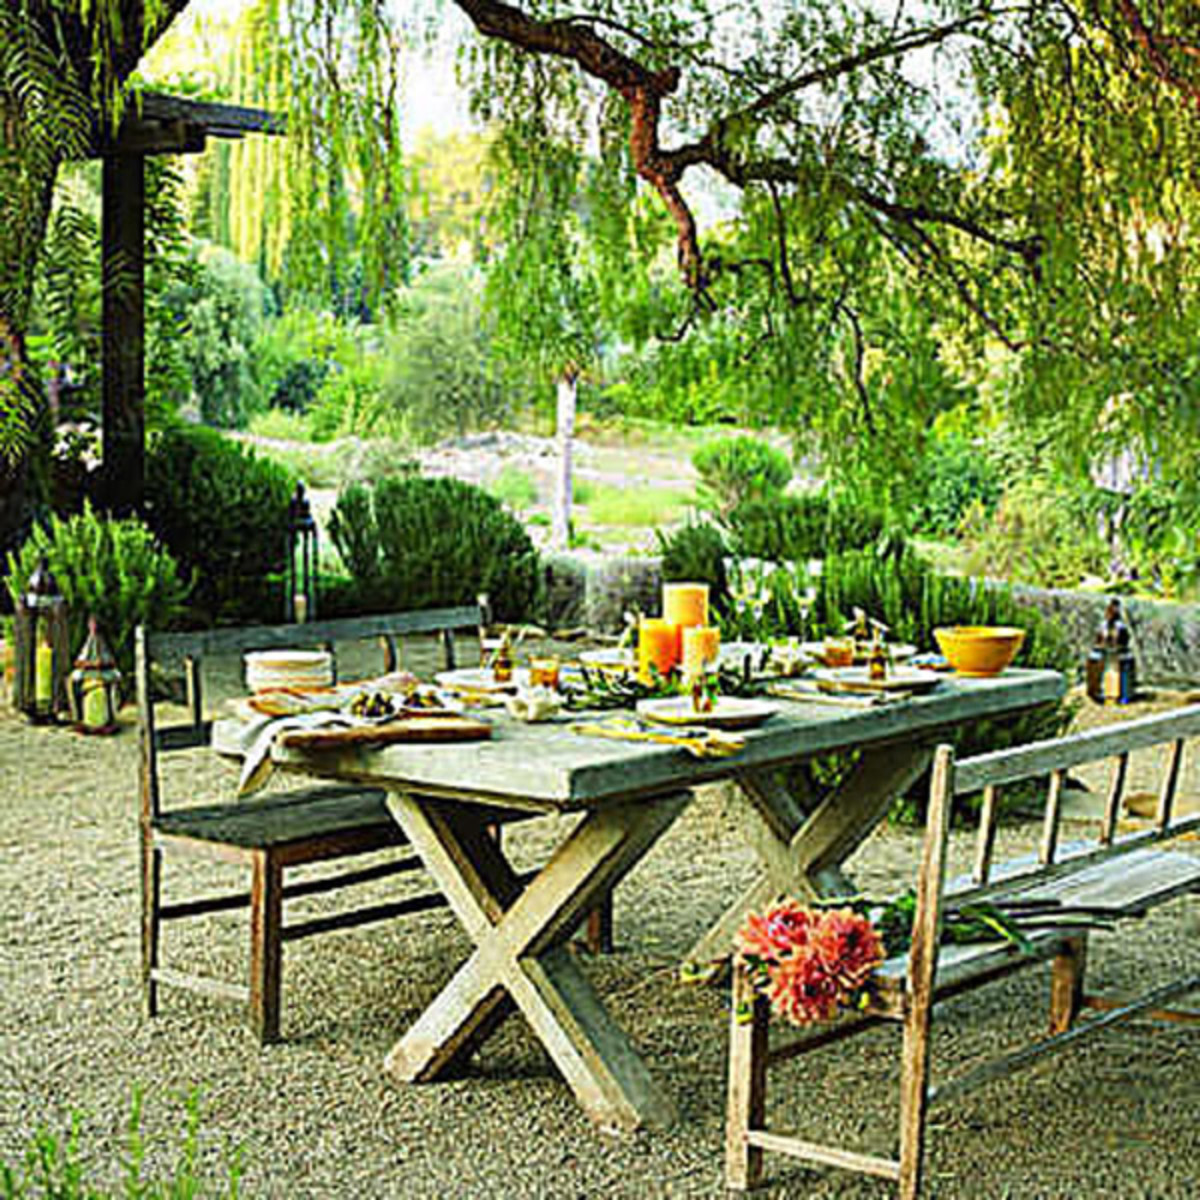 Tuscan style is so charming.